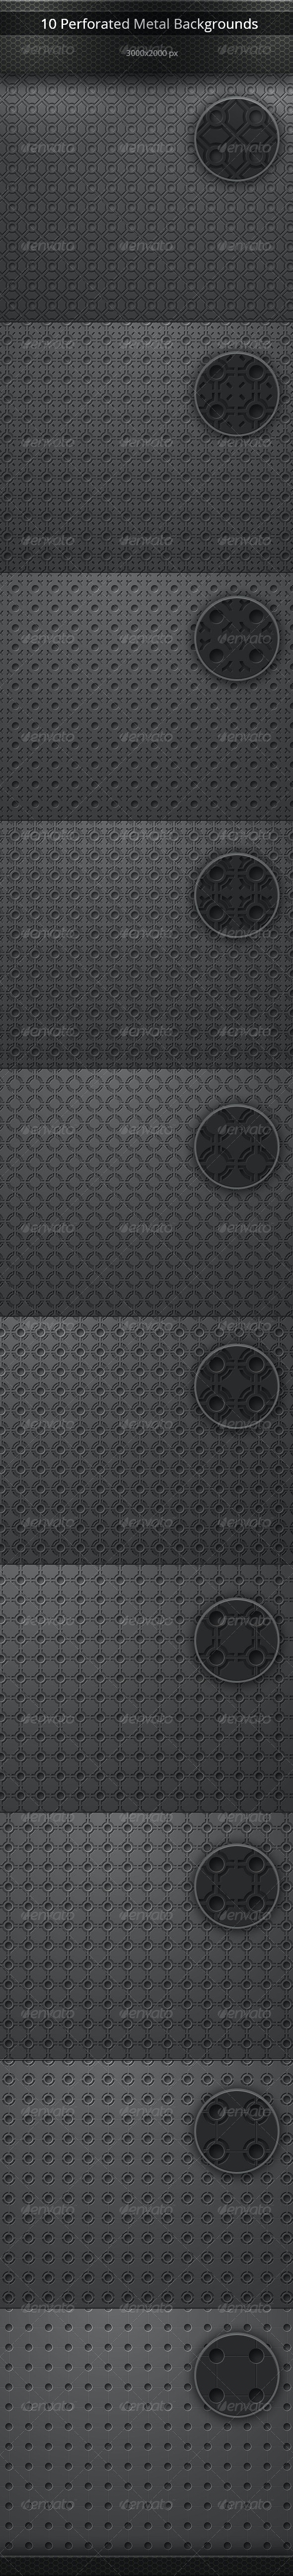 Perforated Metal Backgrounds Set - Backgrounds Graphics